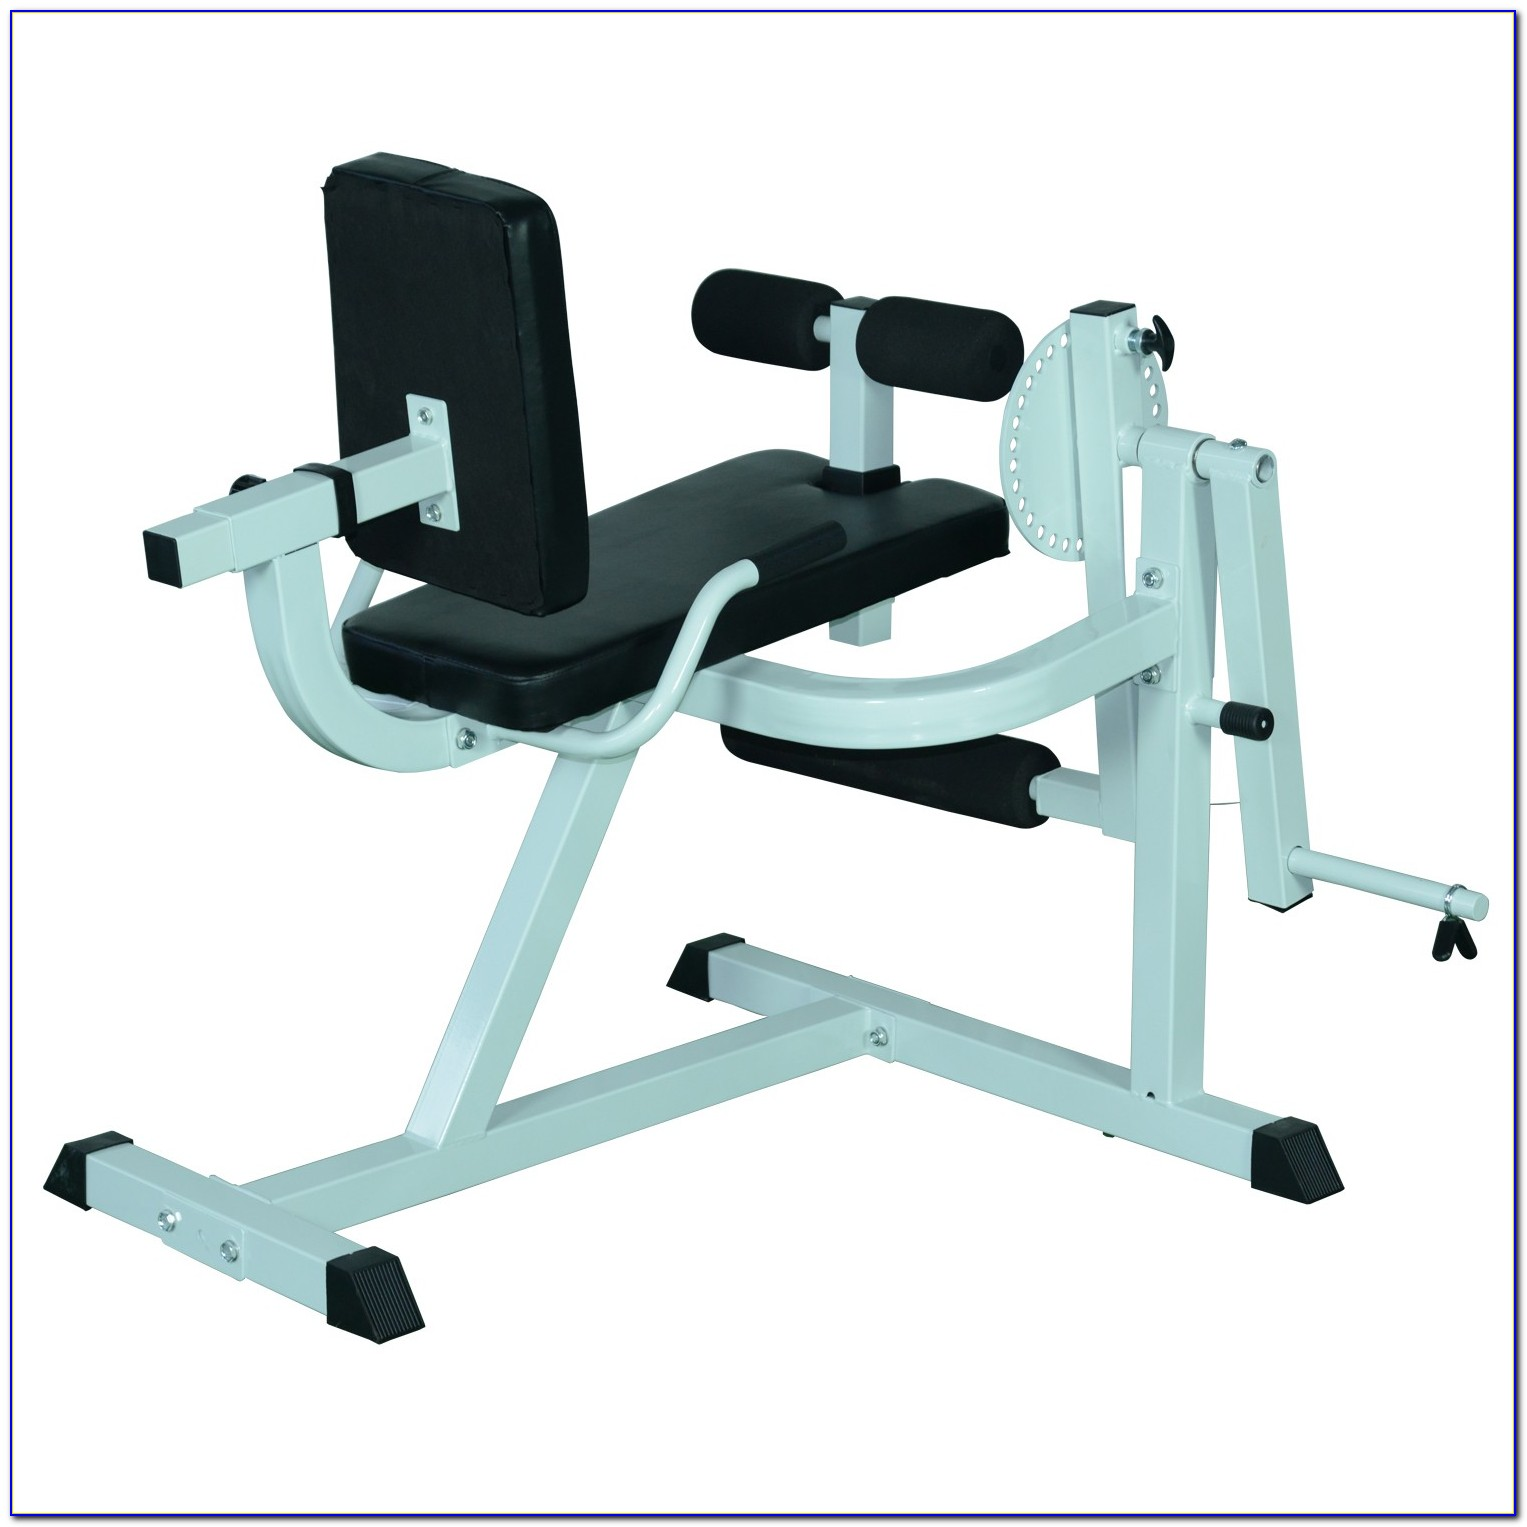 Weight Bench With Leg Extension And Preacher Curl